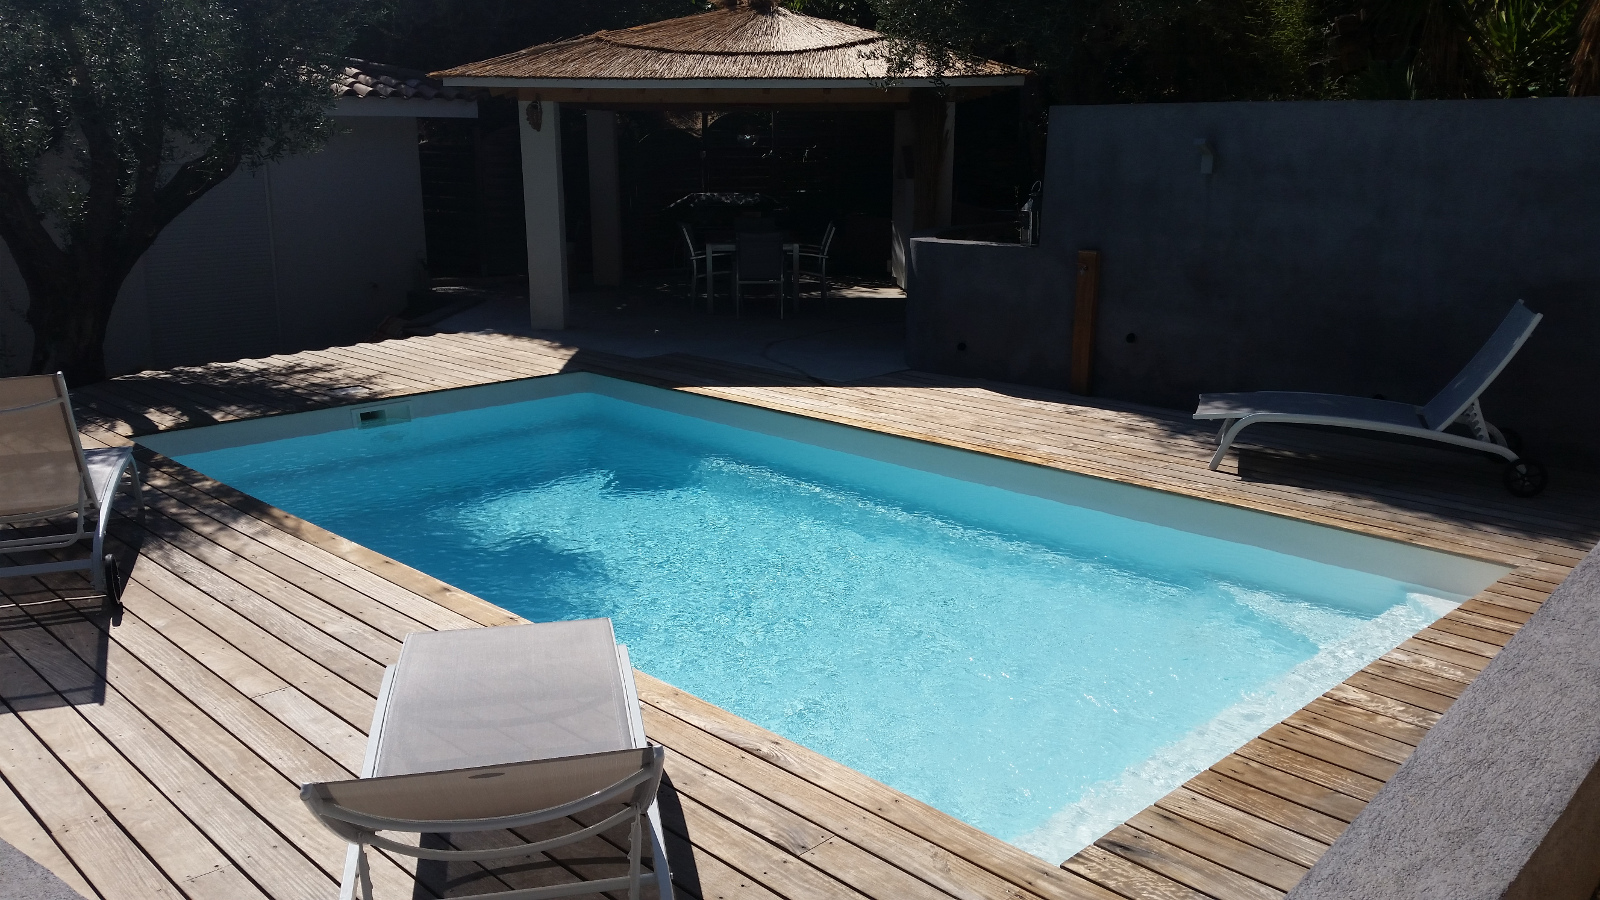 Installation de piscines cuers alliance piscines toulon for Piscine alliance